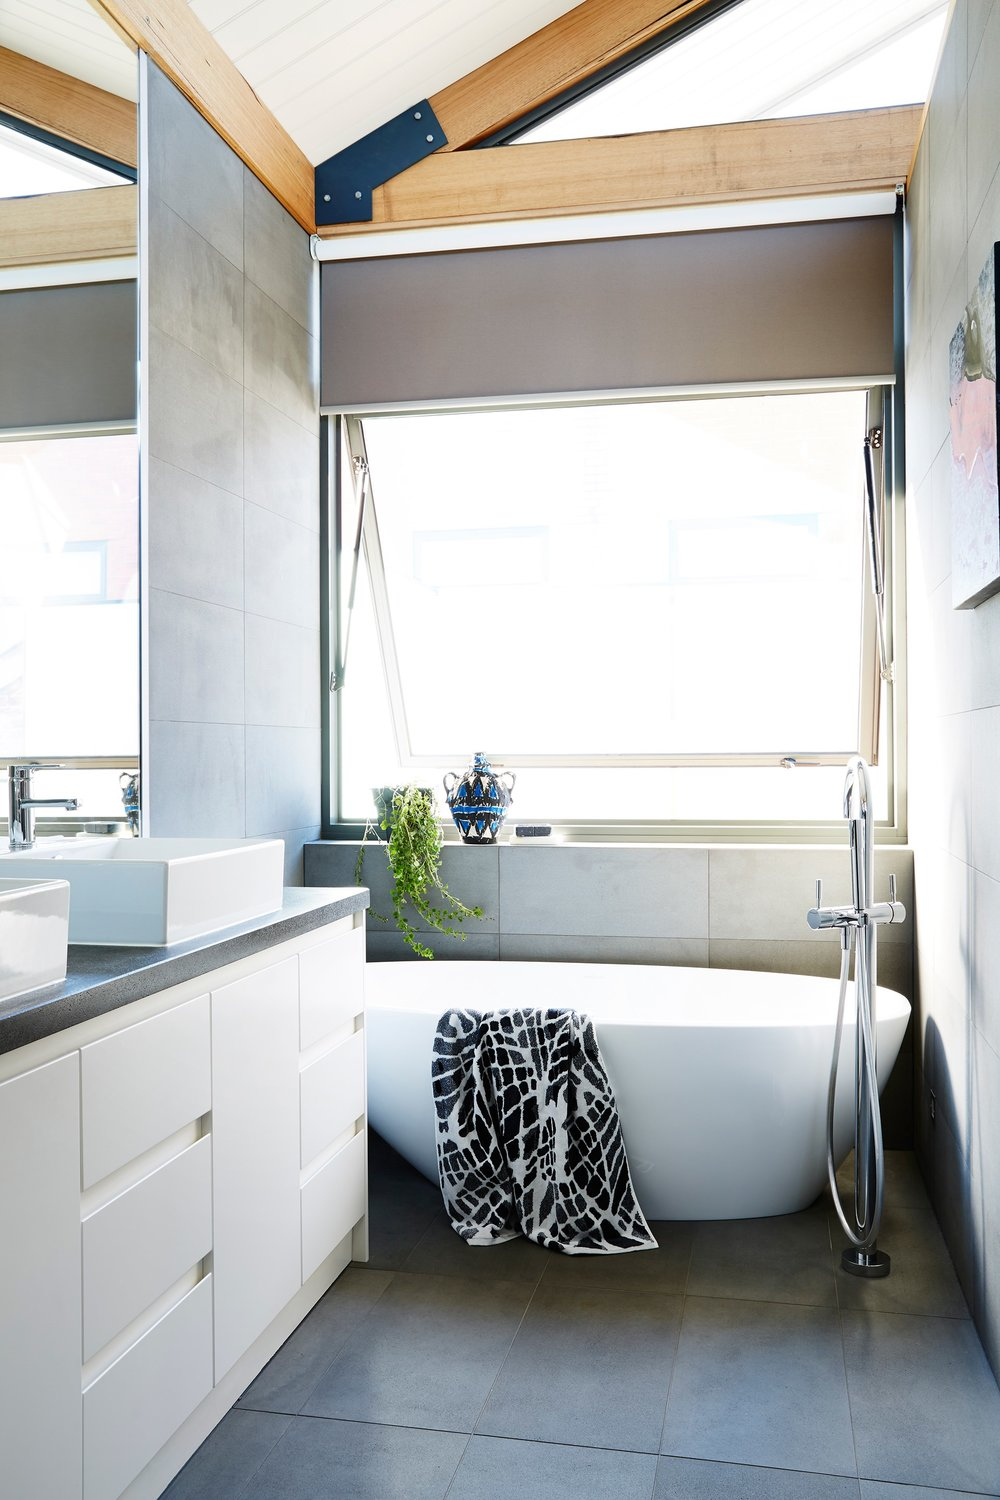 Try a contemporary design with hand-less drawers and a statement bath to die for.